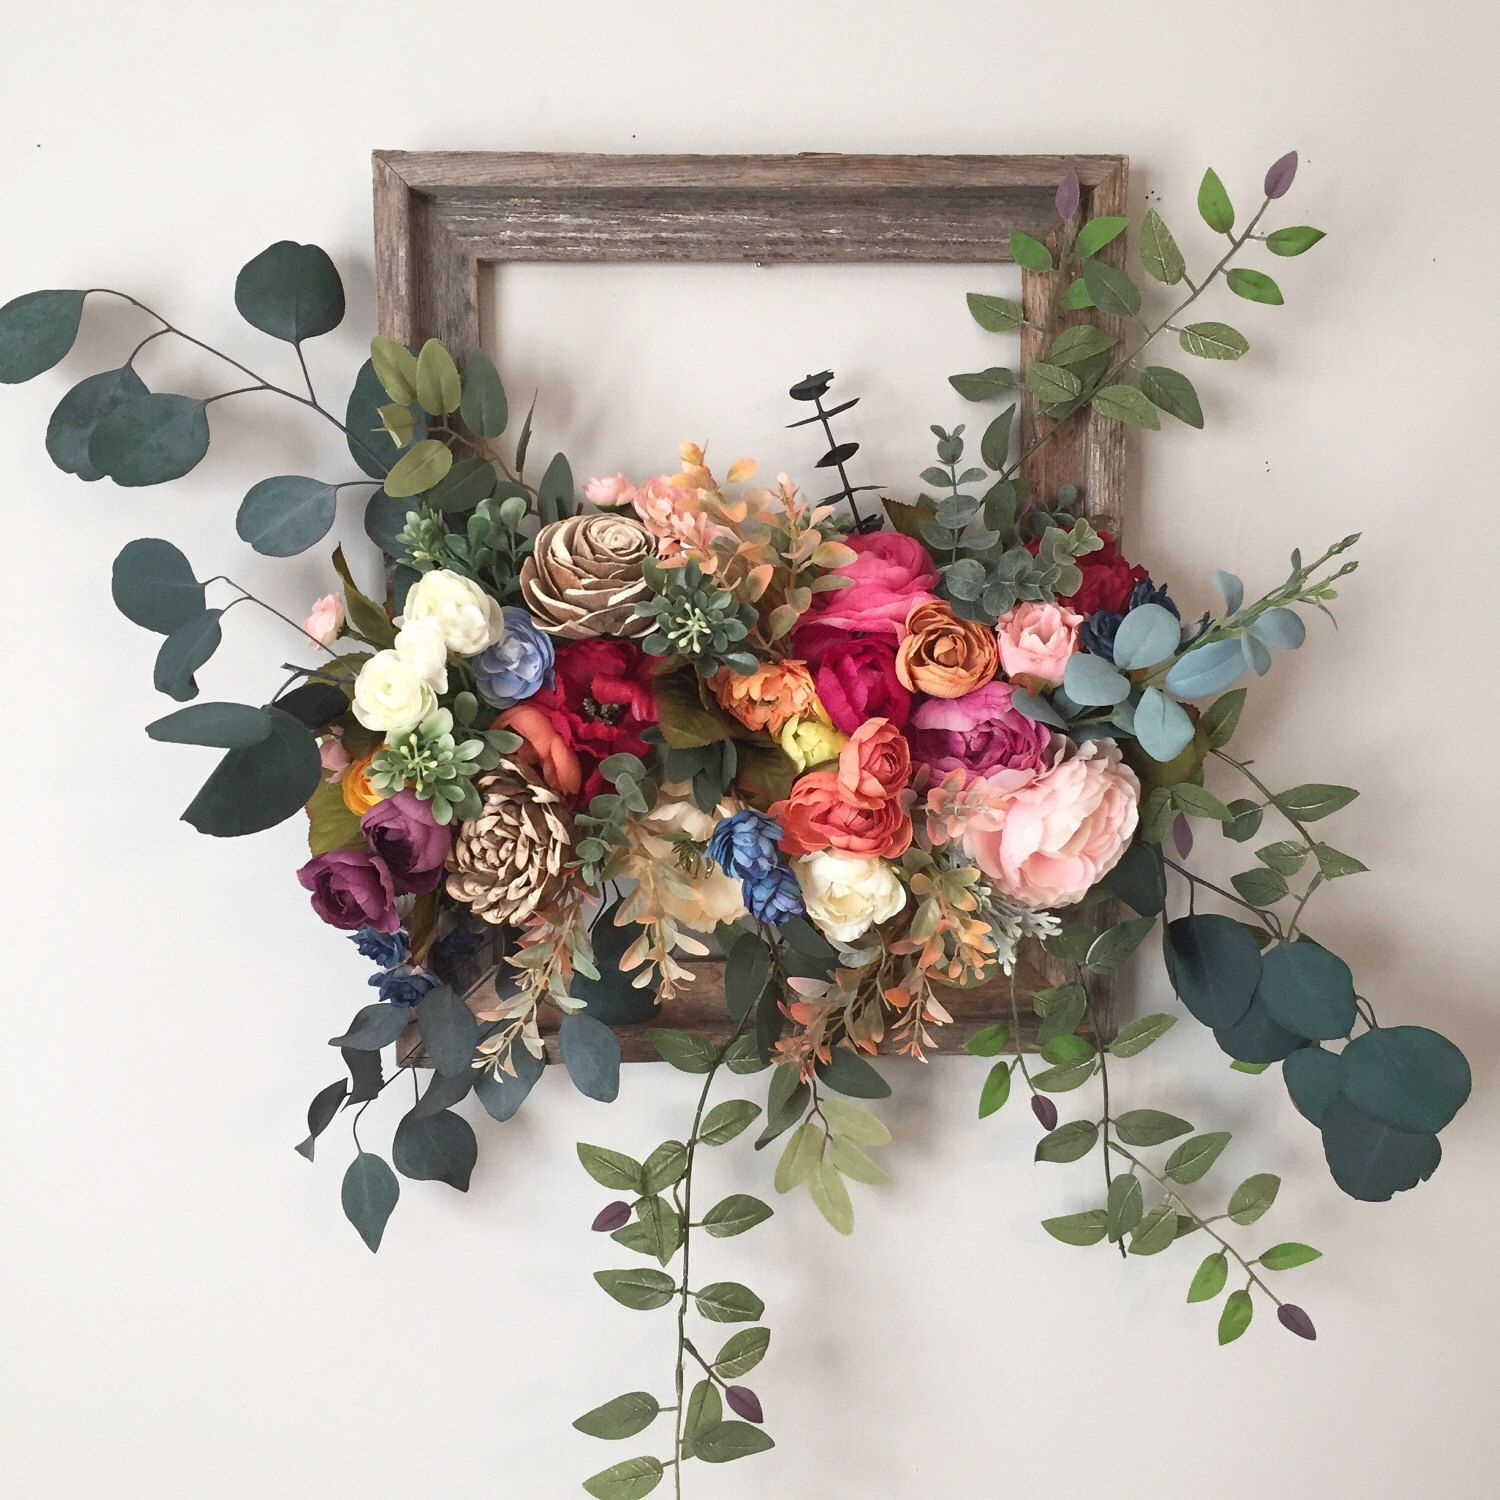 Wall Hanging, Floral Wall Art, Large Wall Hanging, Floral Design Wall Art,